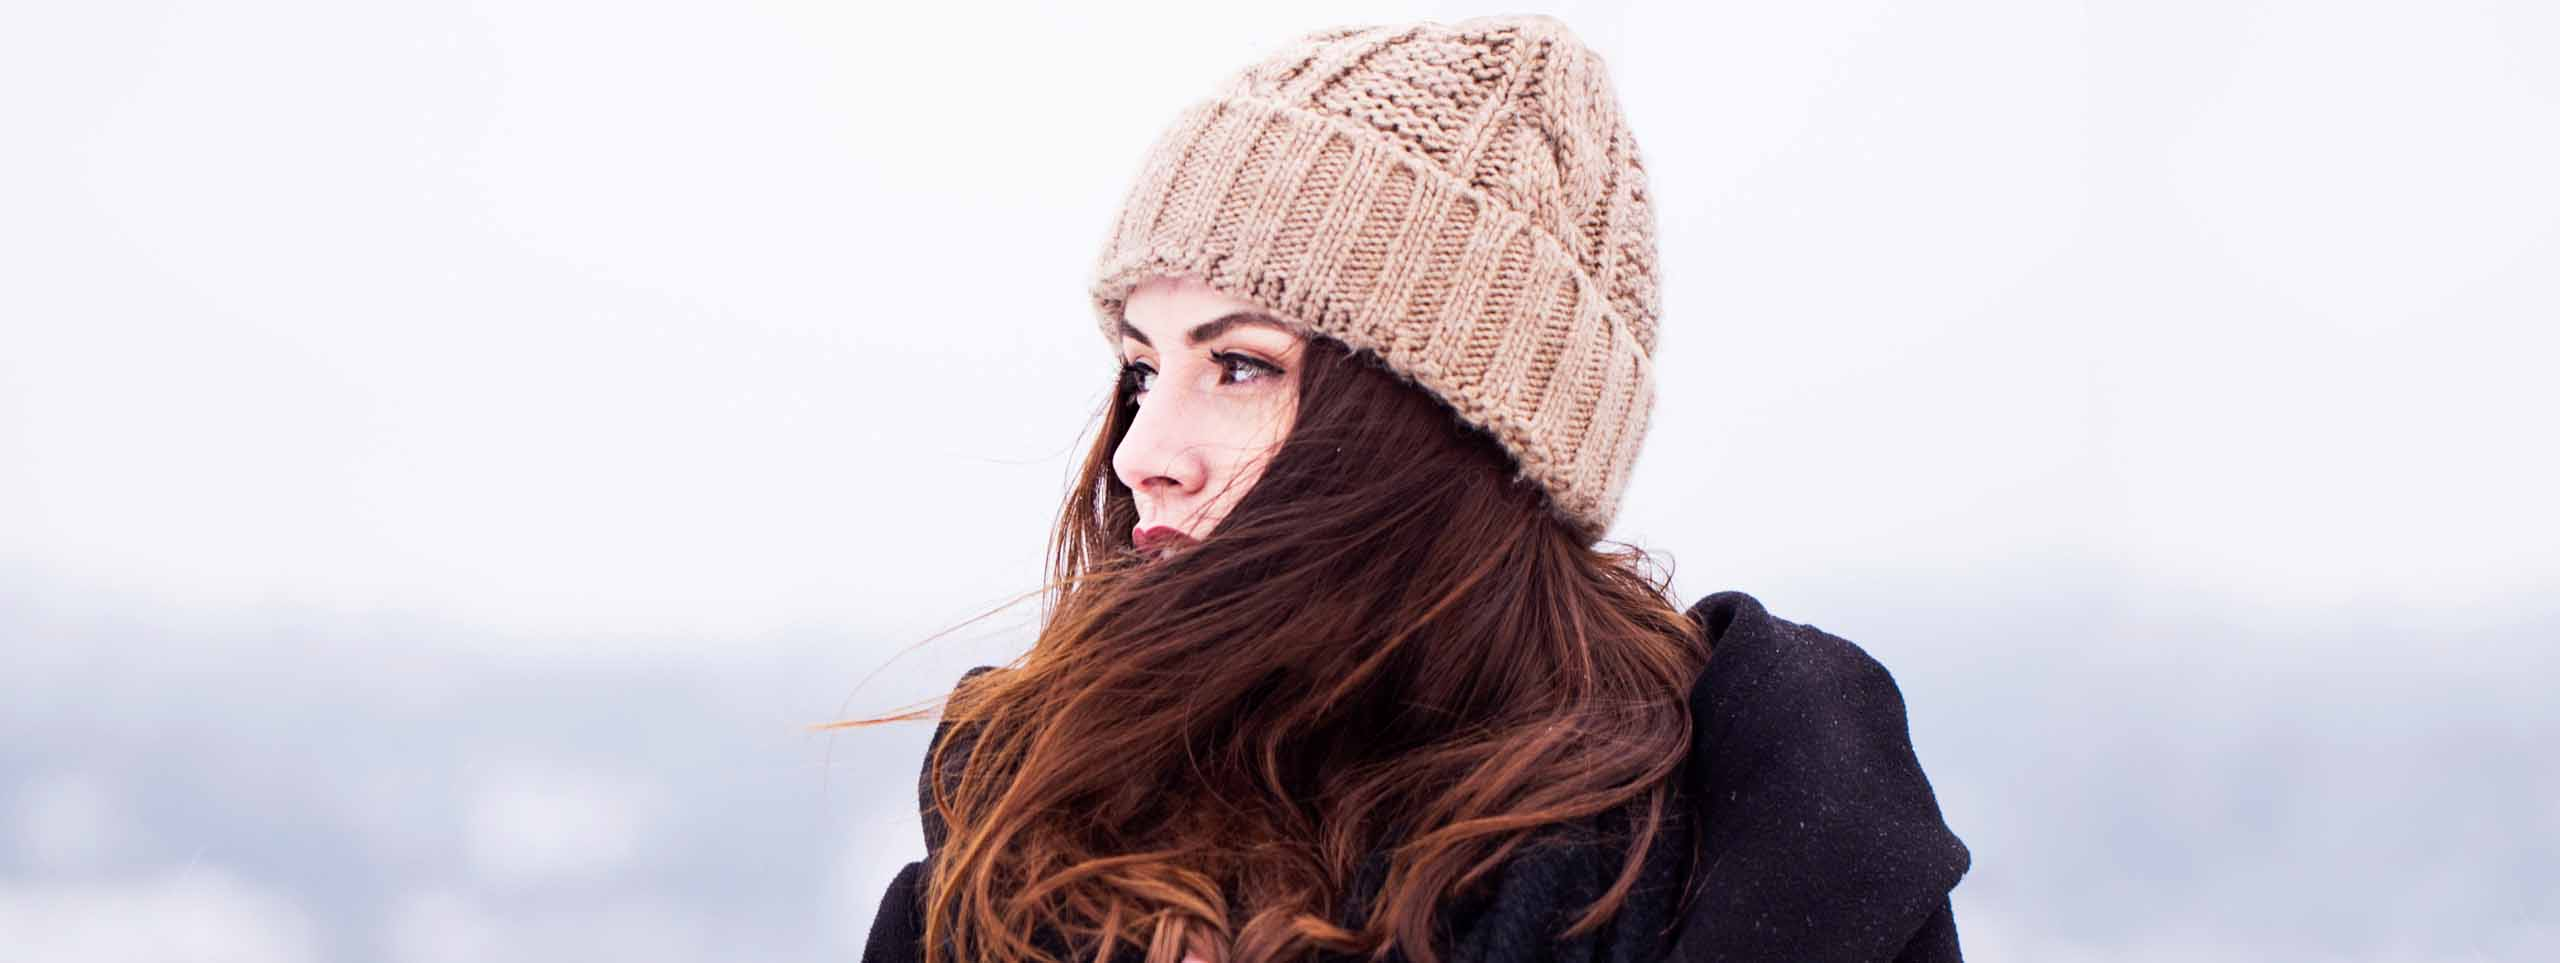 Woman with brown hair and hat in winter